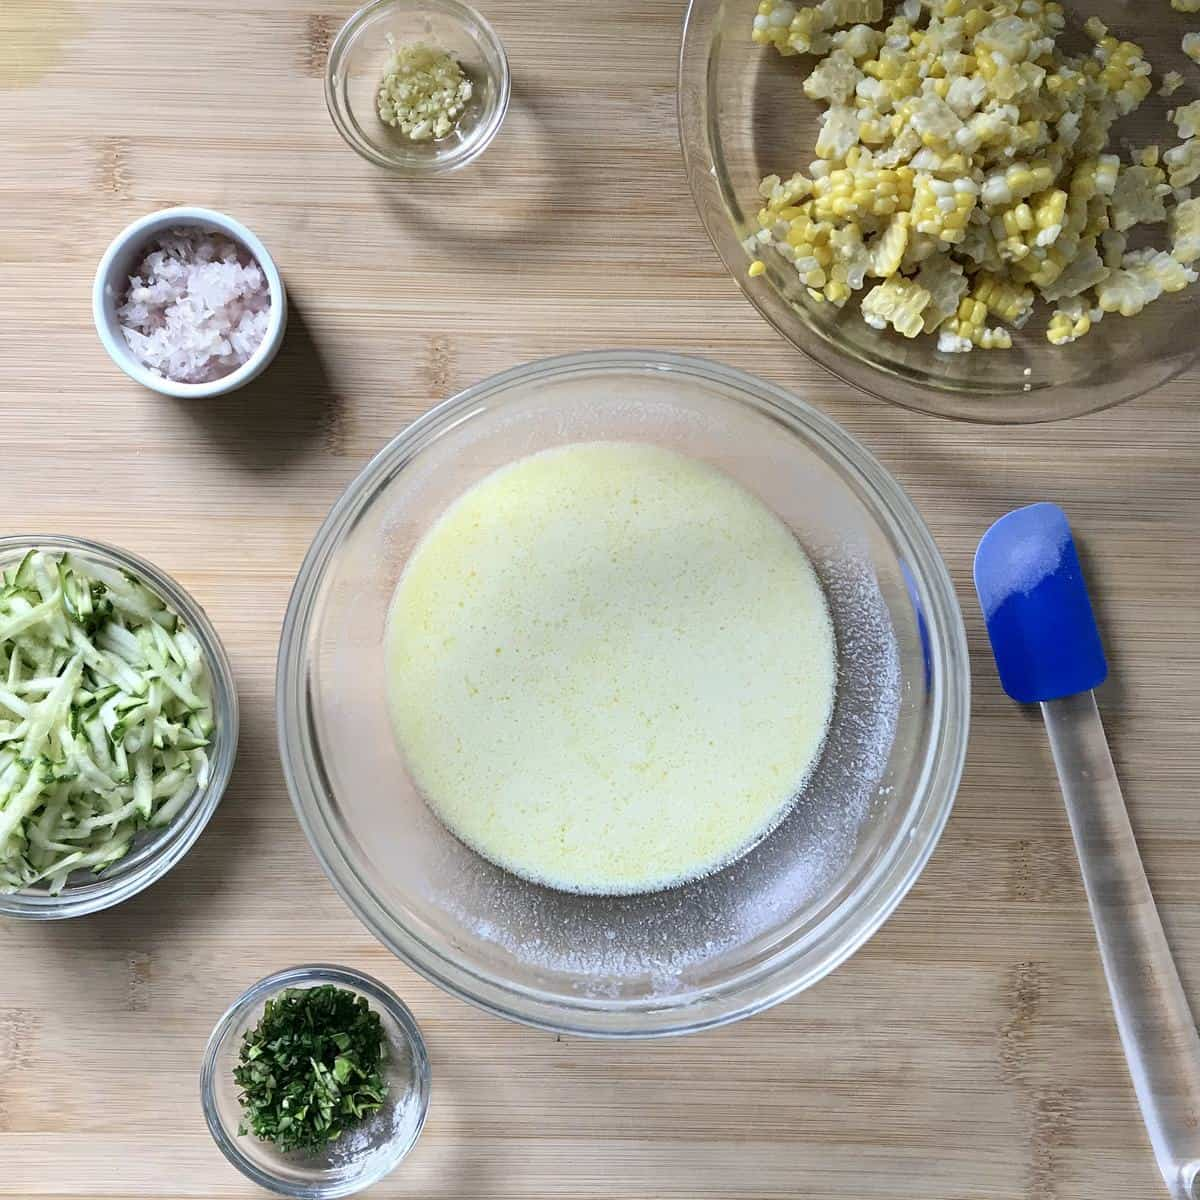 The wet ingredients to make zucchini corn pancakes on a wooden board.